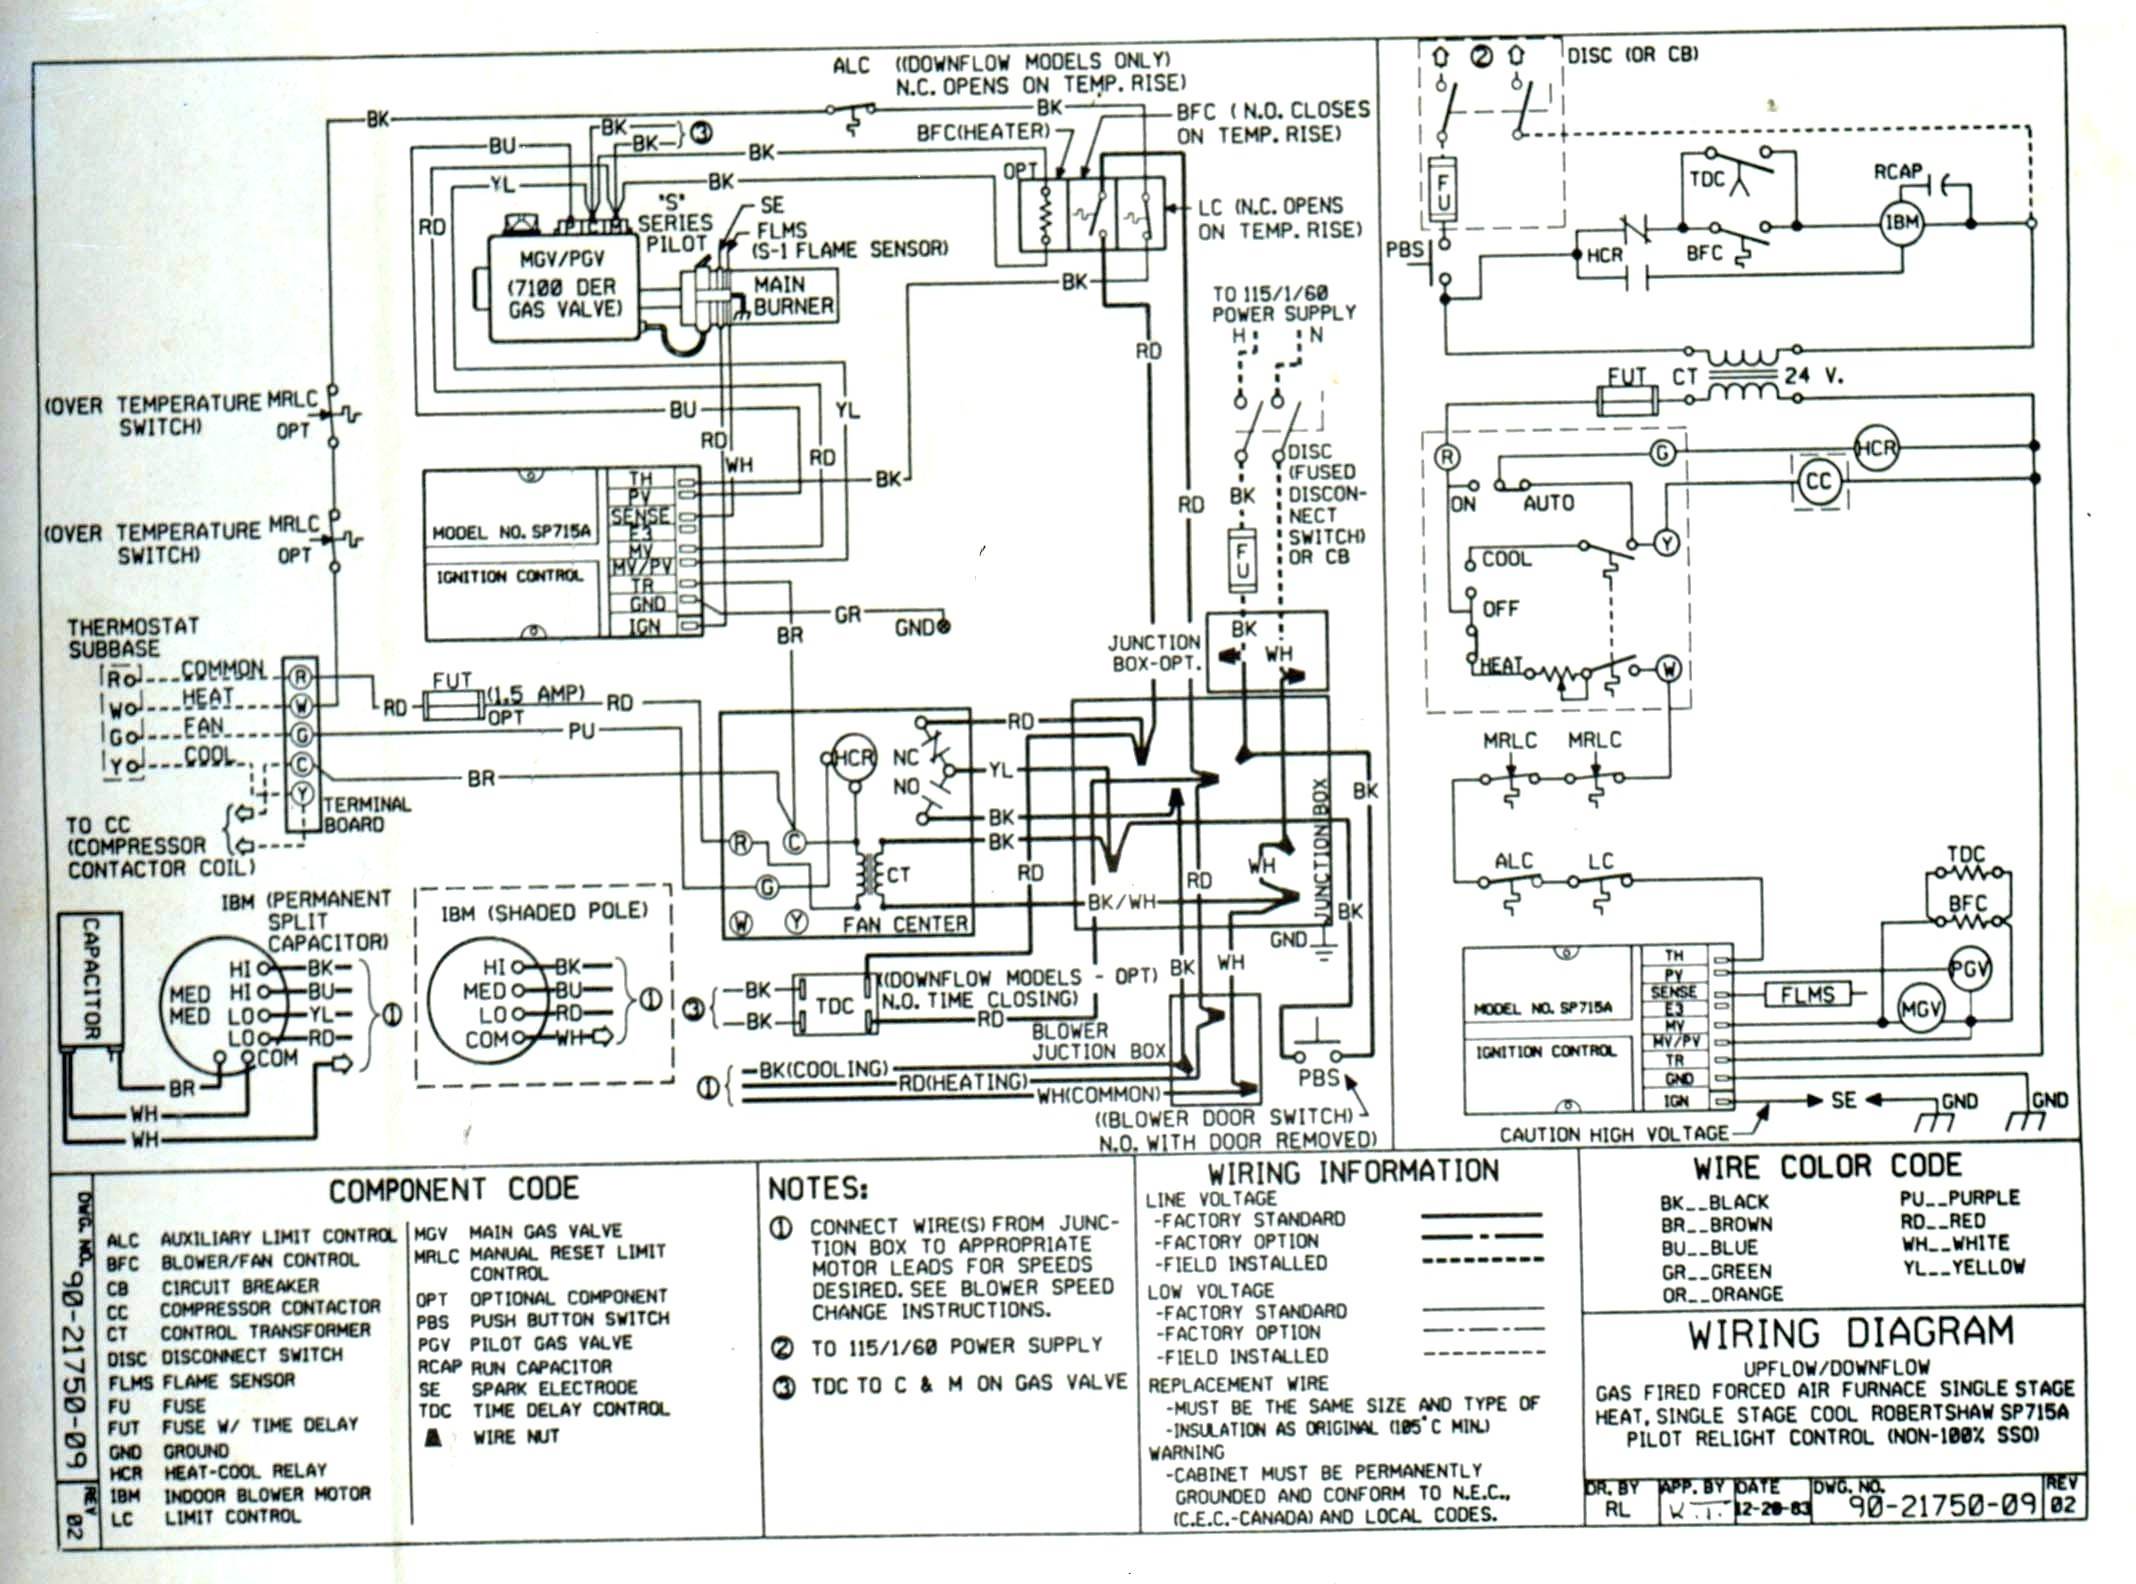 Gas Pump Diagram Goodman Heat Pump Package Unit Wiring Diagram Sample Of Gas Pump Diagram Gas Furnace Wiring Diagram Valid Best Suburban Gas Furnace Wiring